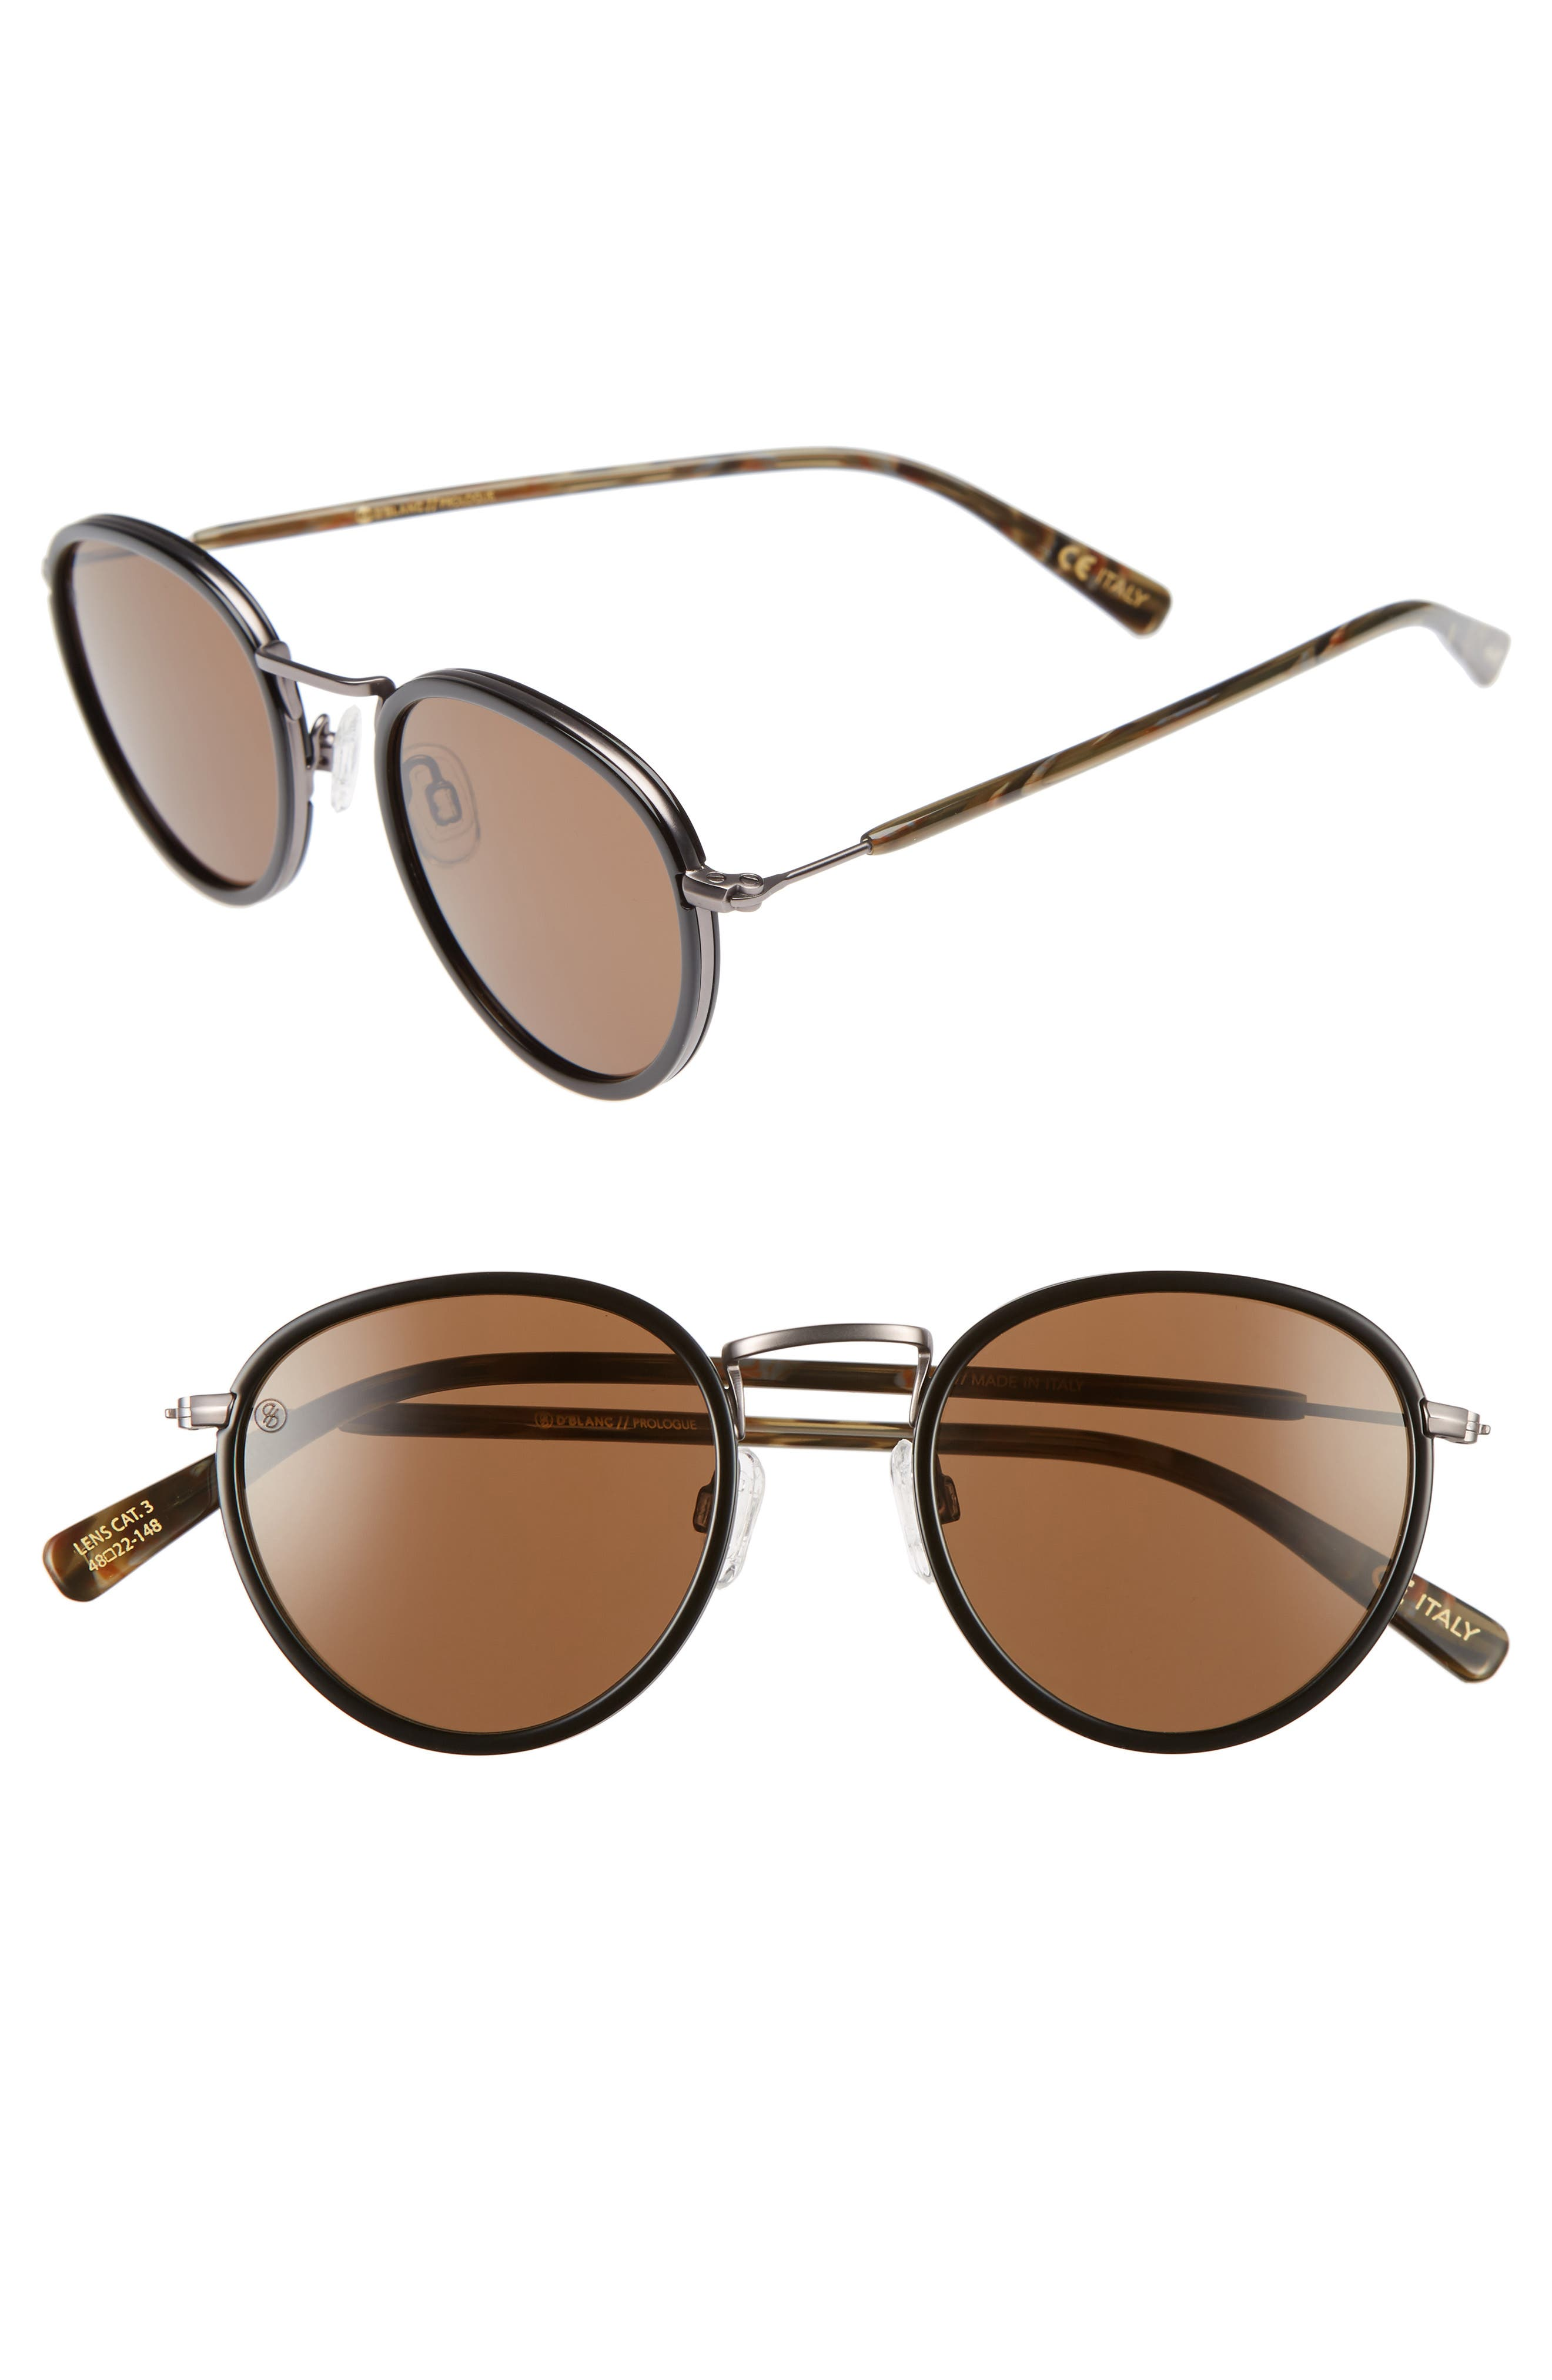 D'BLANC Prologue 48mm Round Sunglasses,                         Main,                         color, Flat Charcoal/ Brown